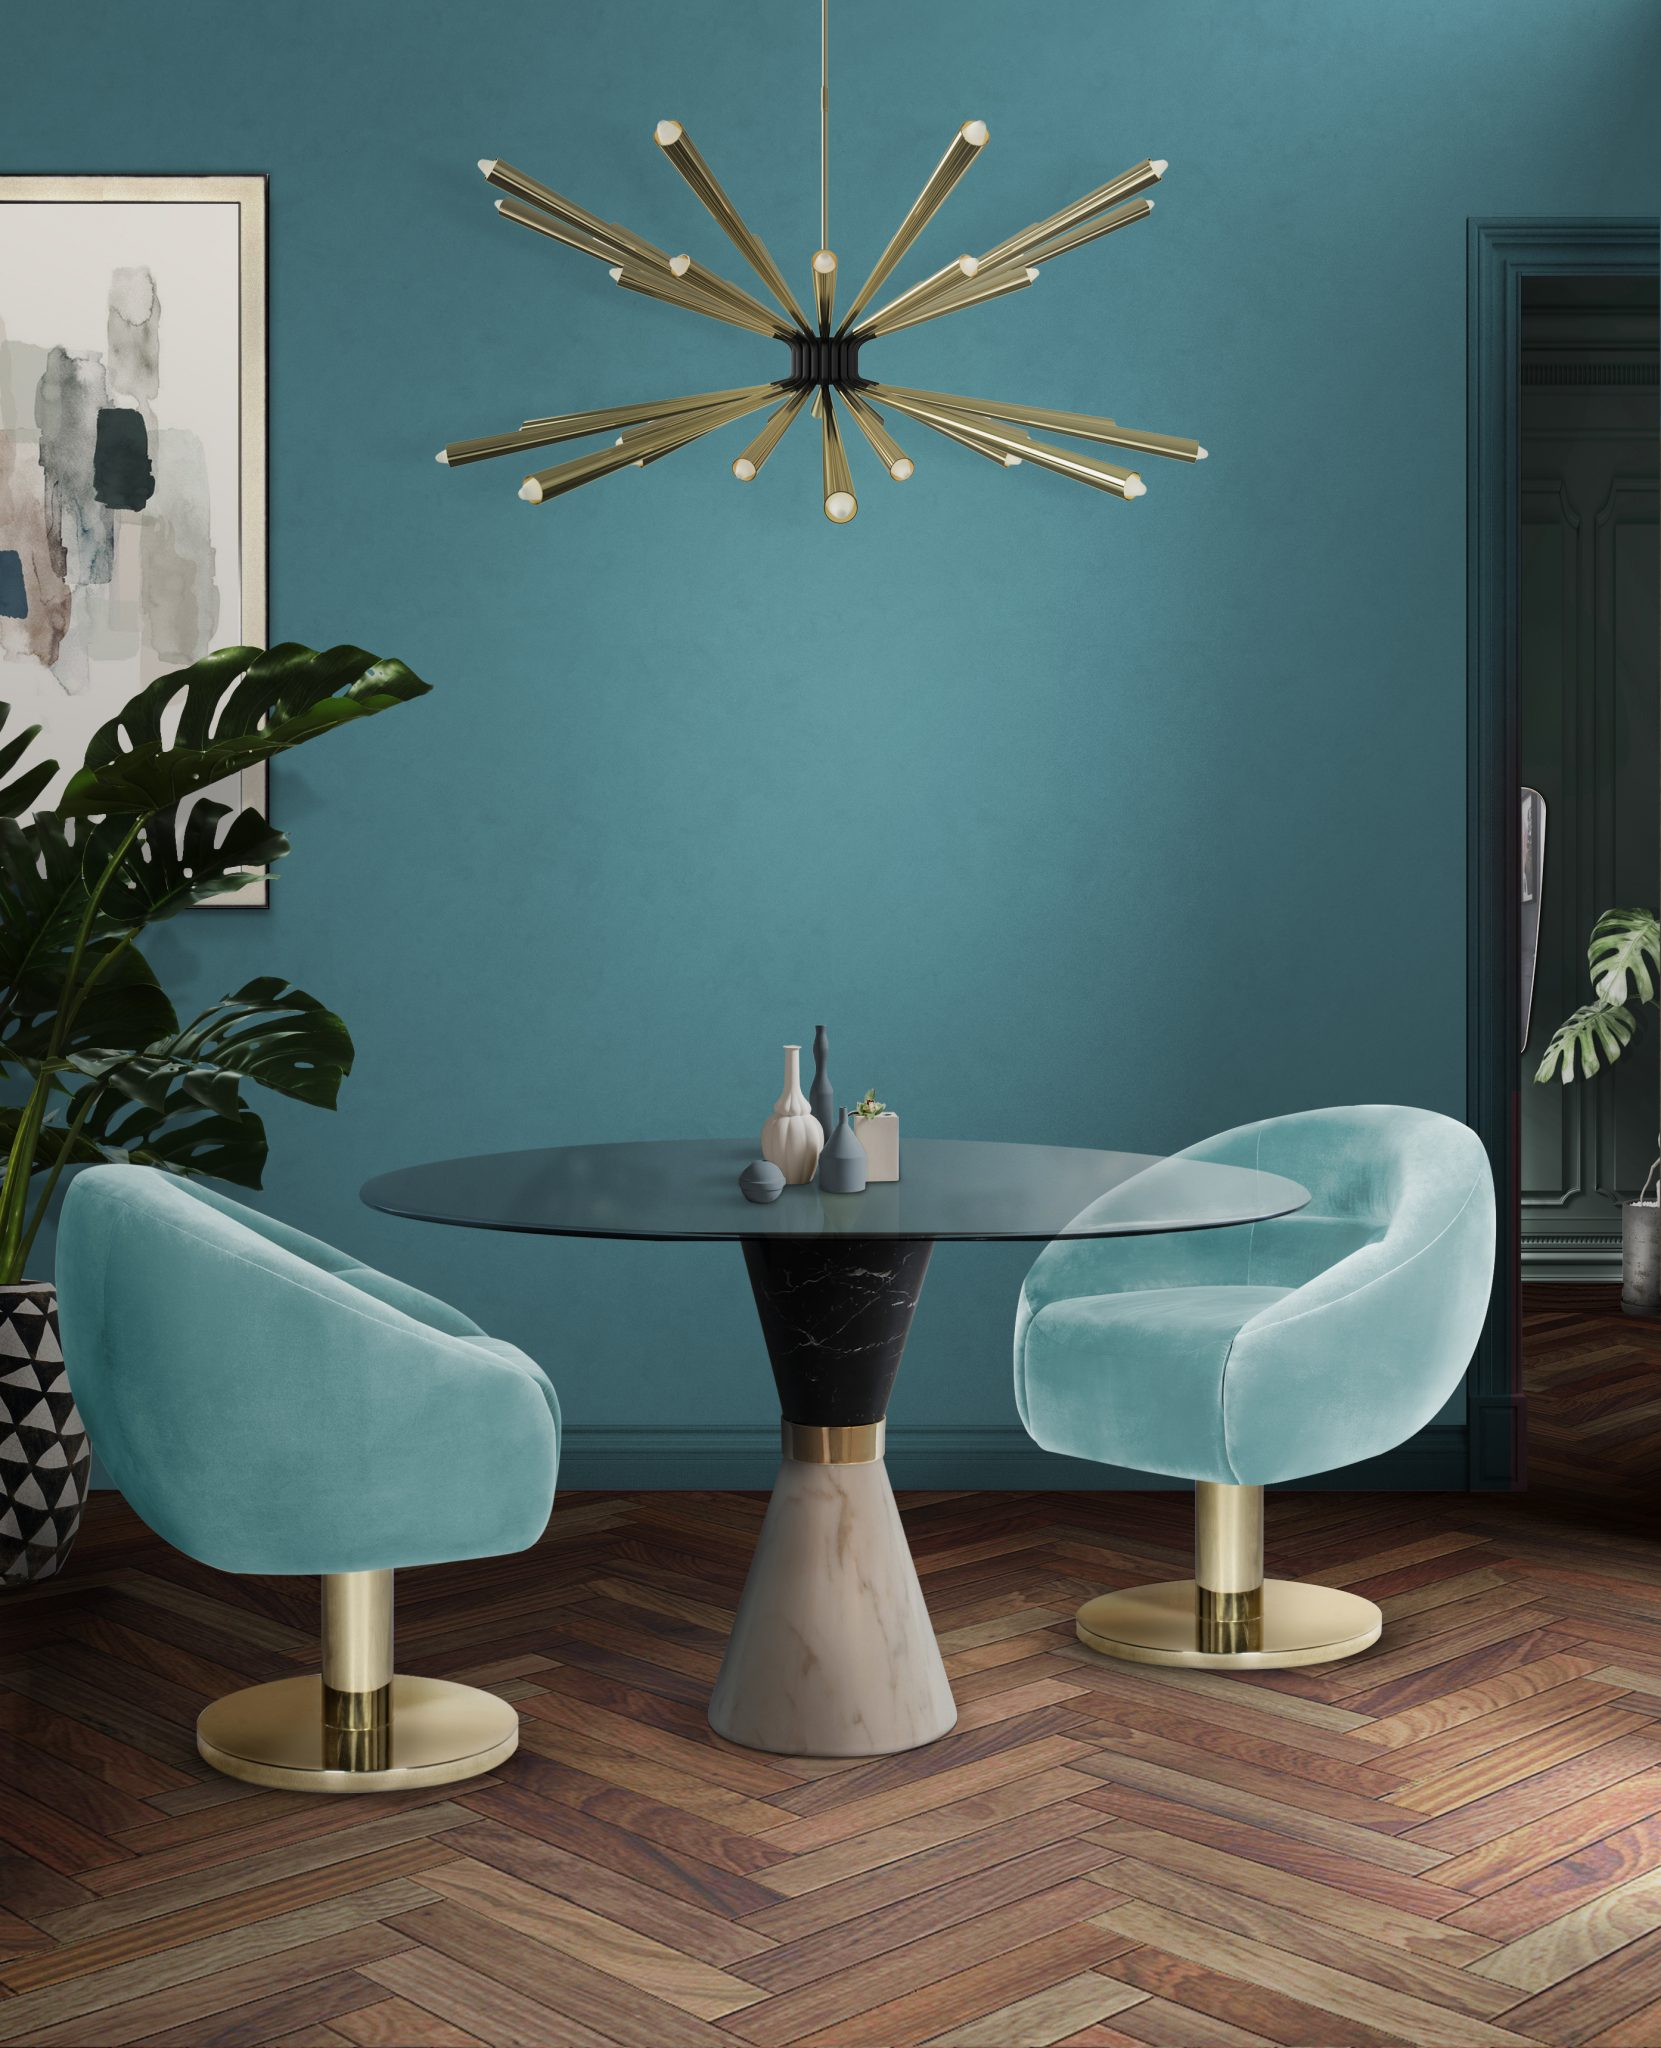 DINING ROOM WITH A BLUE INTERIOR